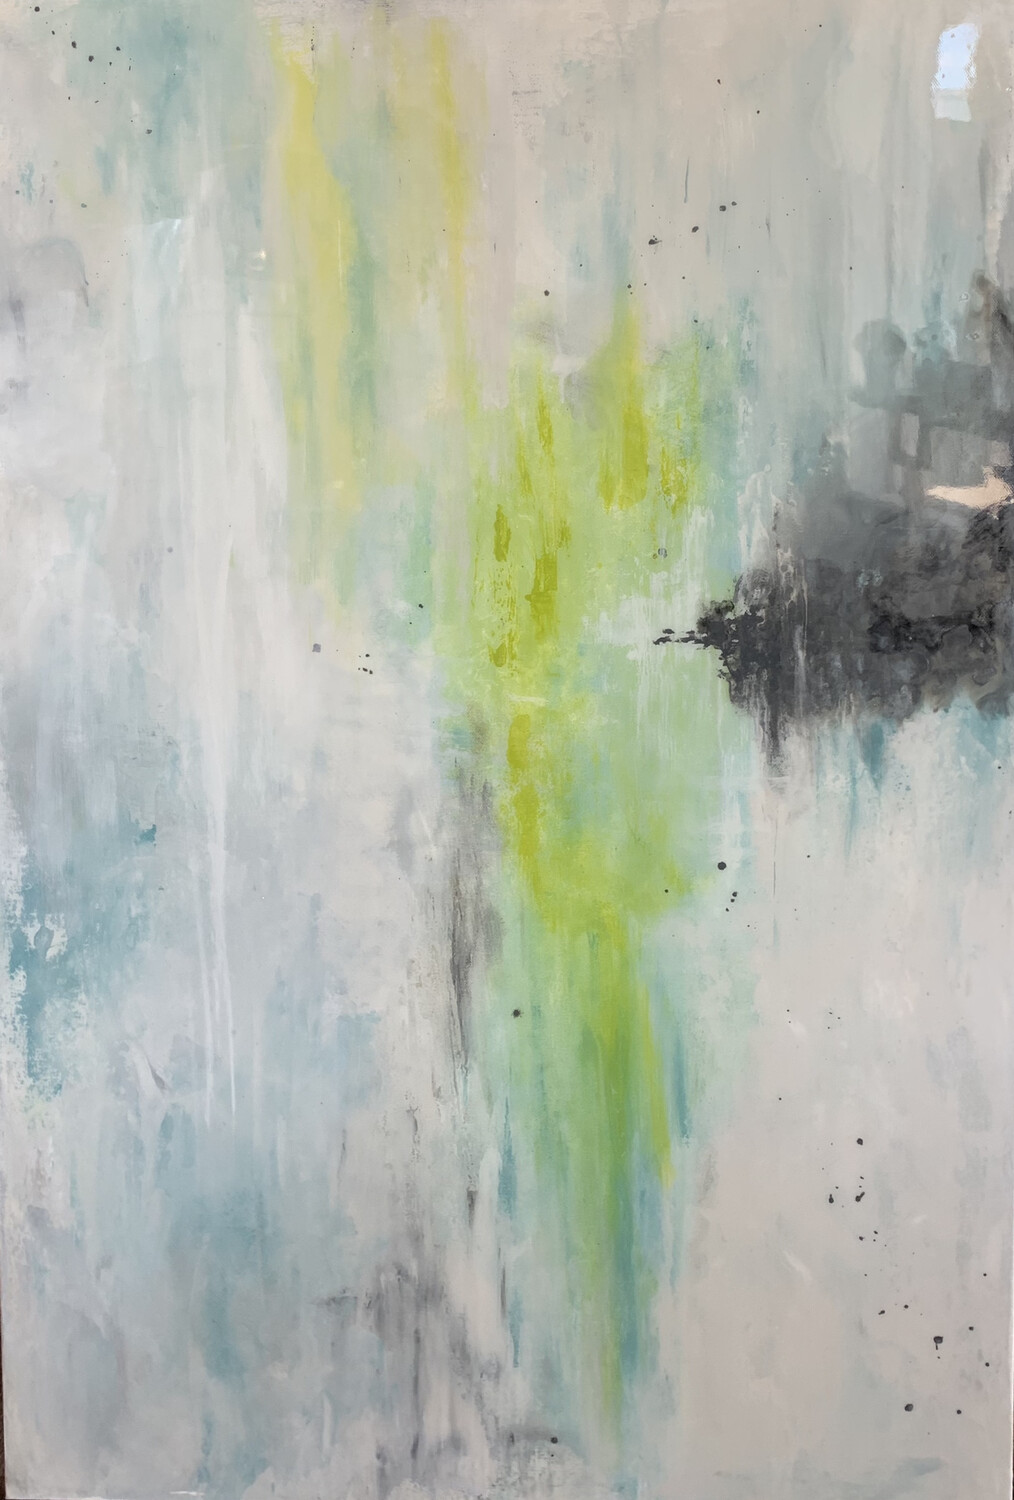 24x36 Green/Yellow Painting